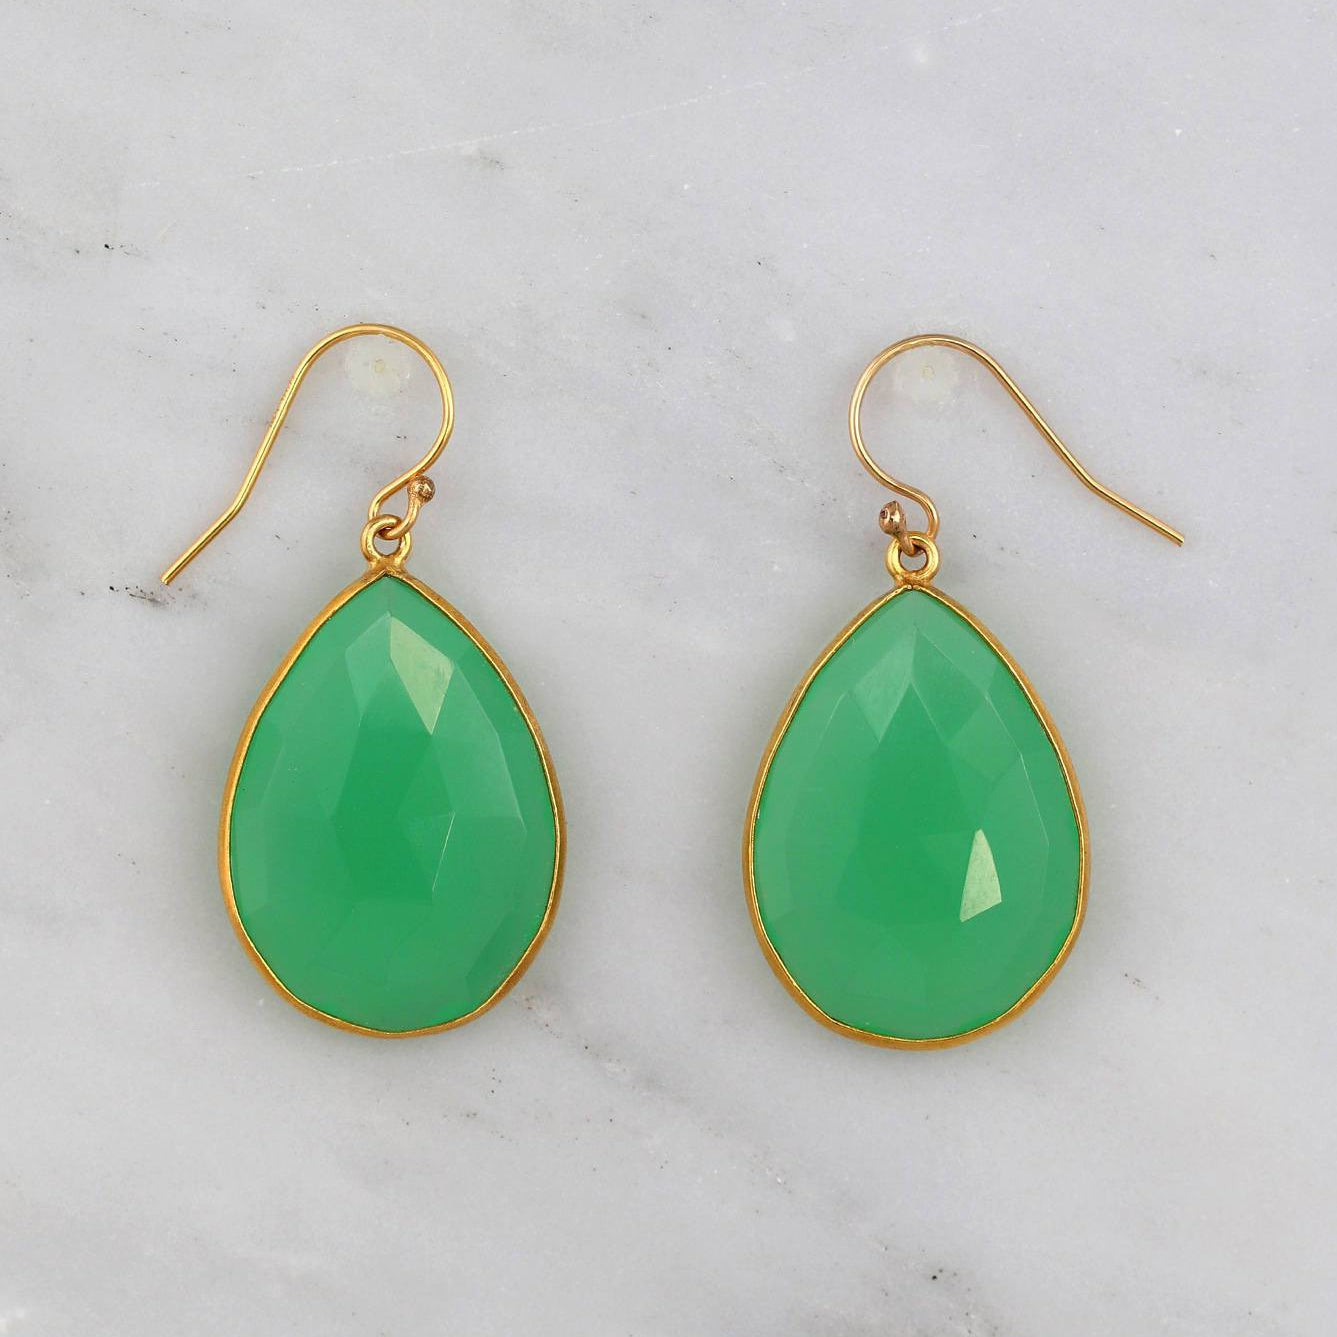 Chrysoprase Earring, Drop and Dangle Earring, Green Gemstone Earring, Gold filled wires Earring, Large Gemstone Earring, Elegant Earring